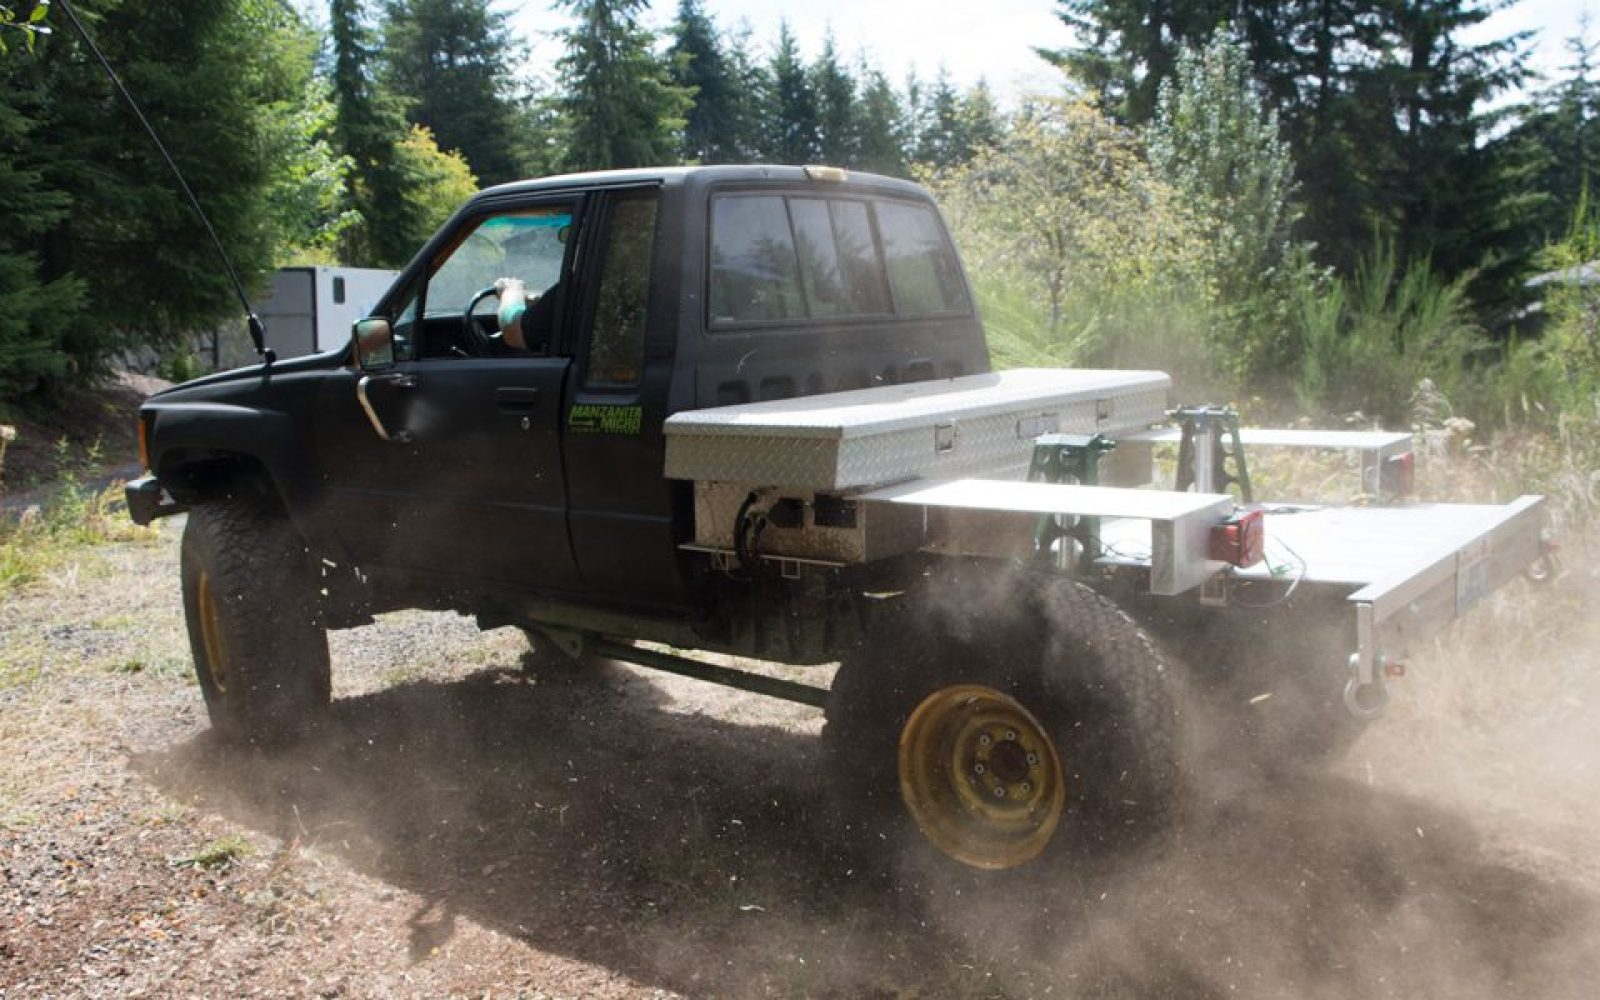 1949 Chevy Truck 4x4 Conversion Ev Electrek Off Roading And Enthusiast Converts 1984 Toyota Pickup Into An All Electric Using Nissan Leaf Batteries